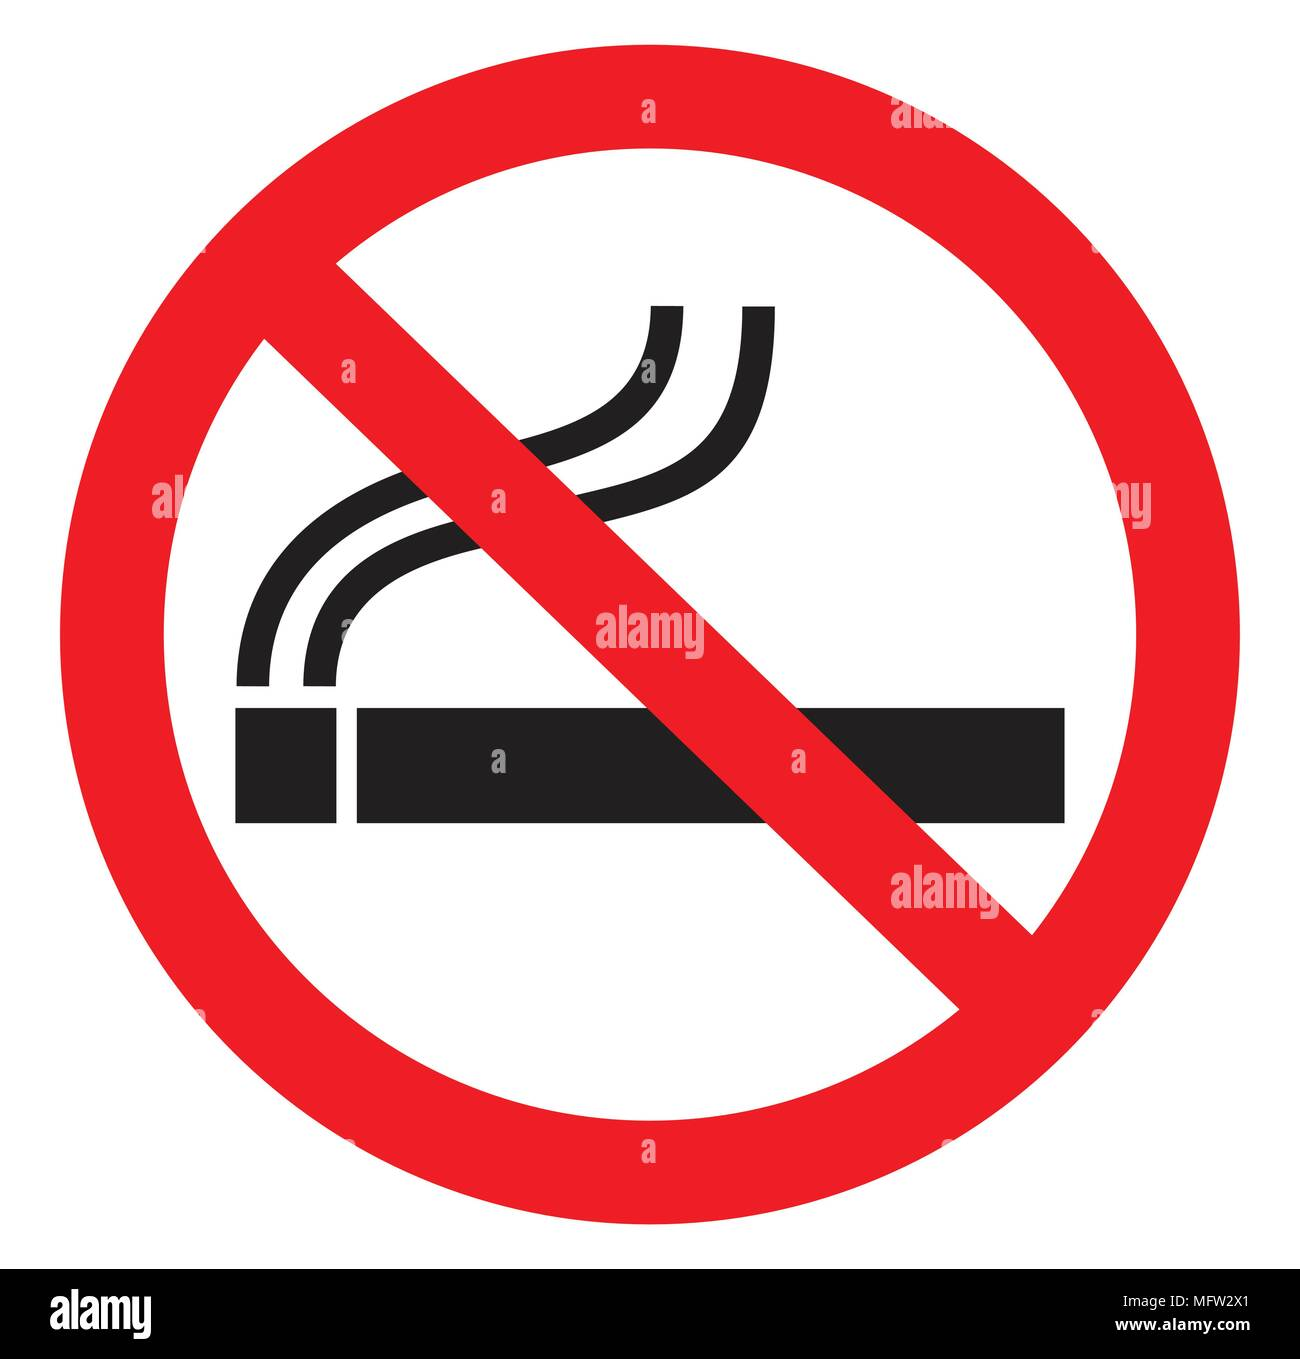 No Smoking Symbol Icon Stock Vector Art Illustration Vector Image